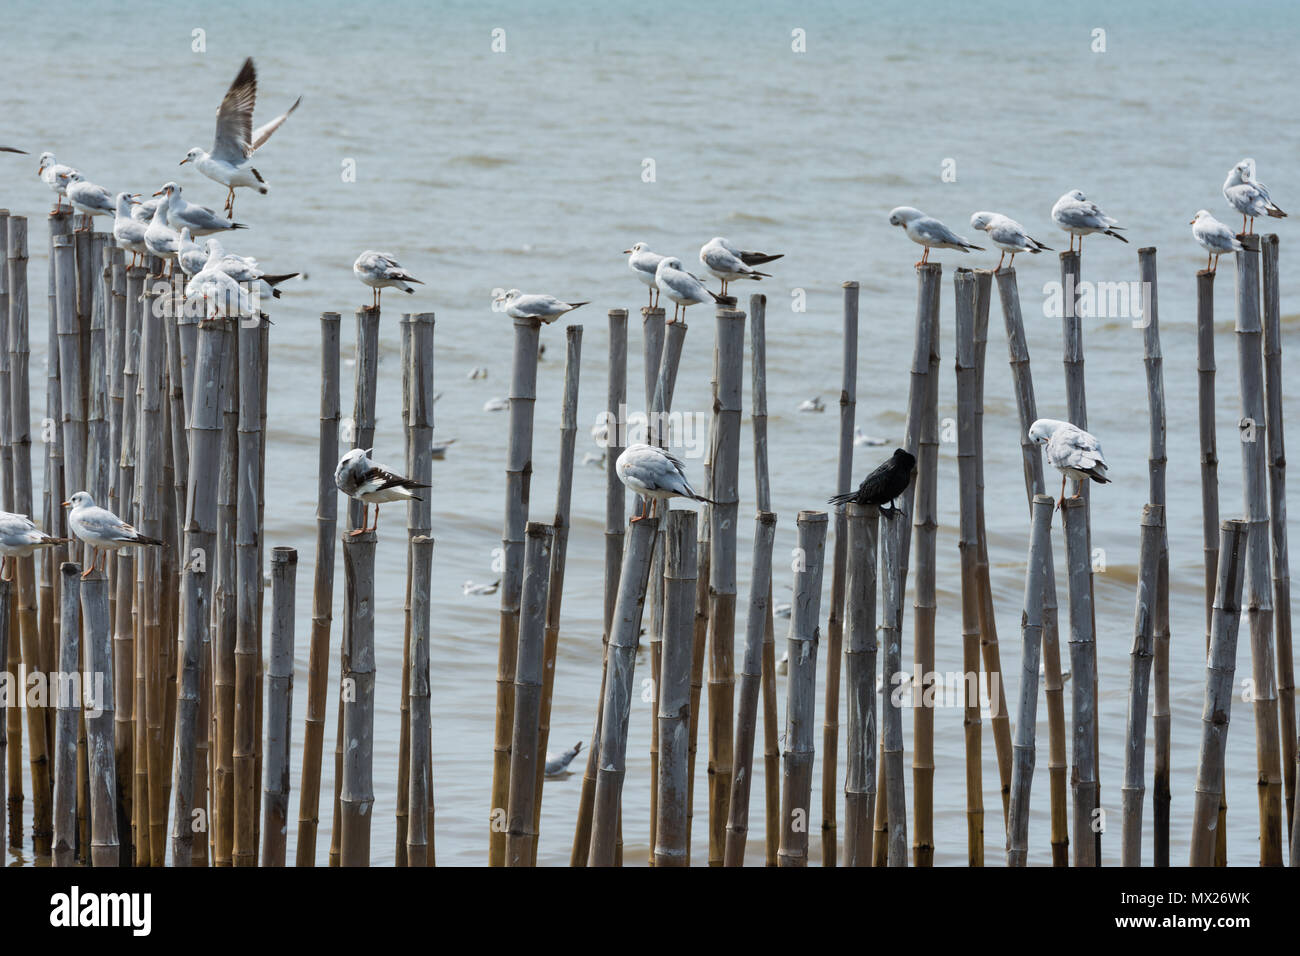 Group of seagulls holding top edge of bamboo settled down in sea Stock Photo